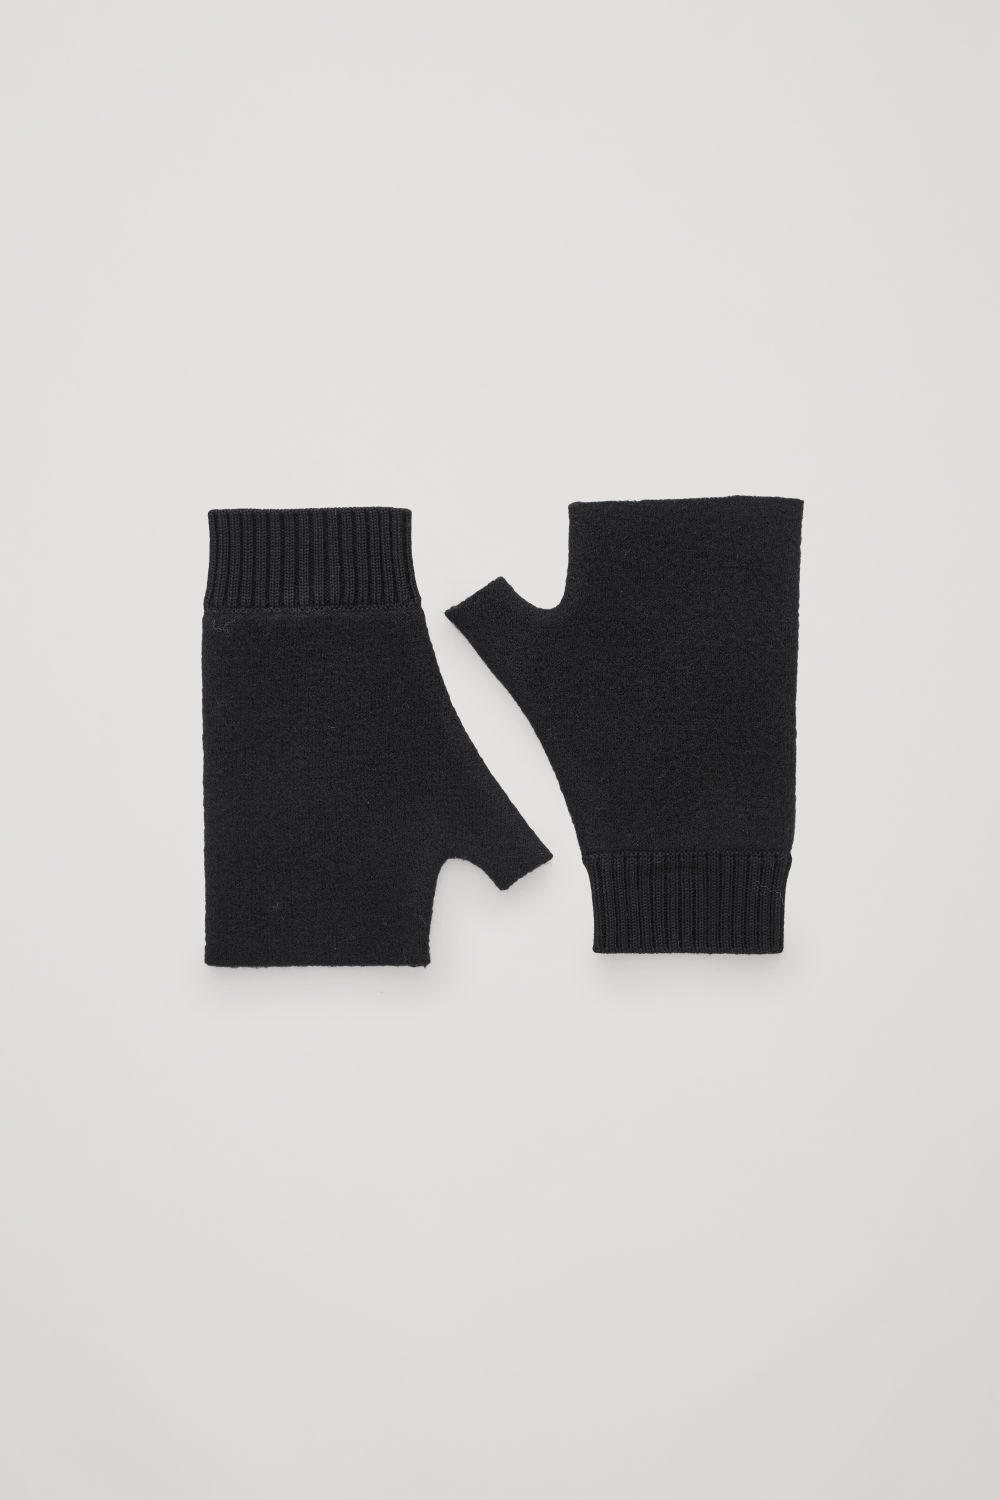 코스 COS MERINO FINGERLESS GLOVES,Black